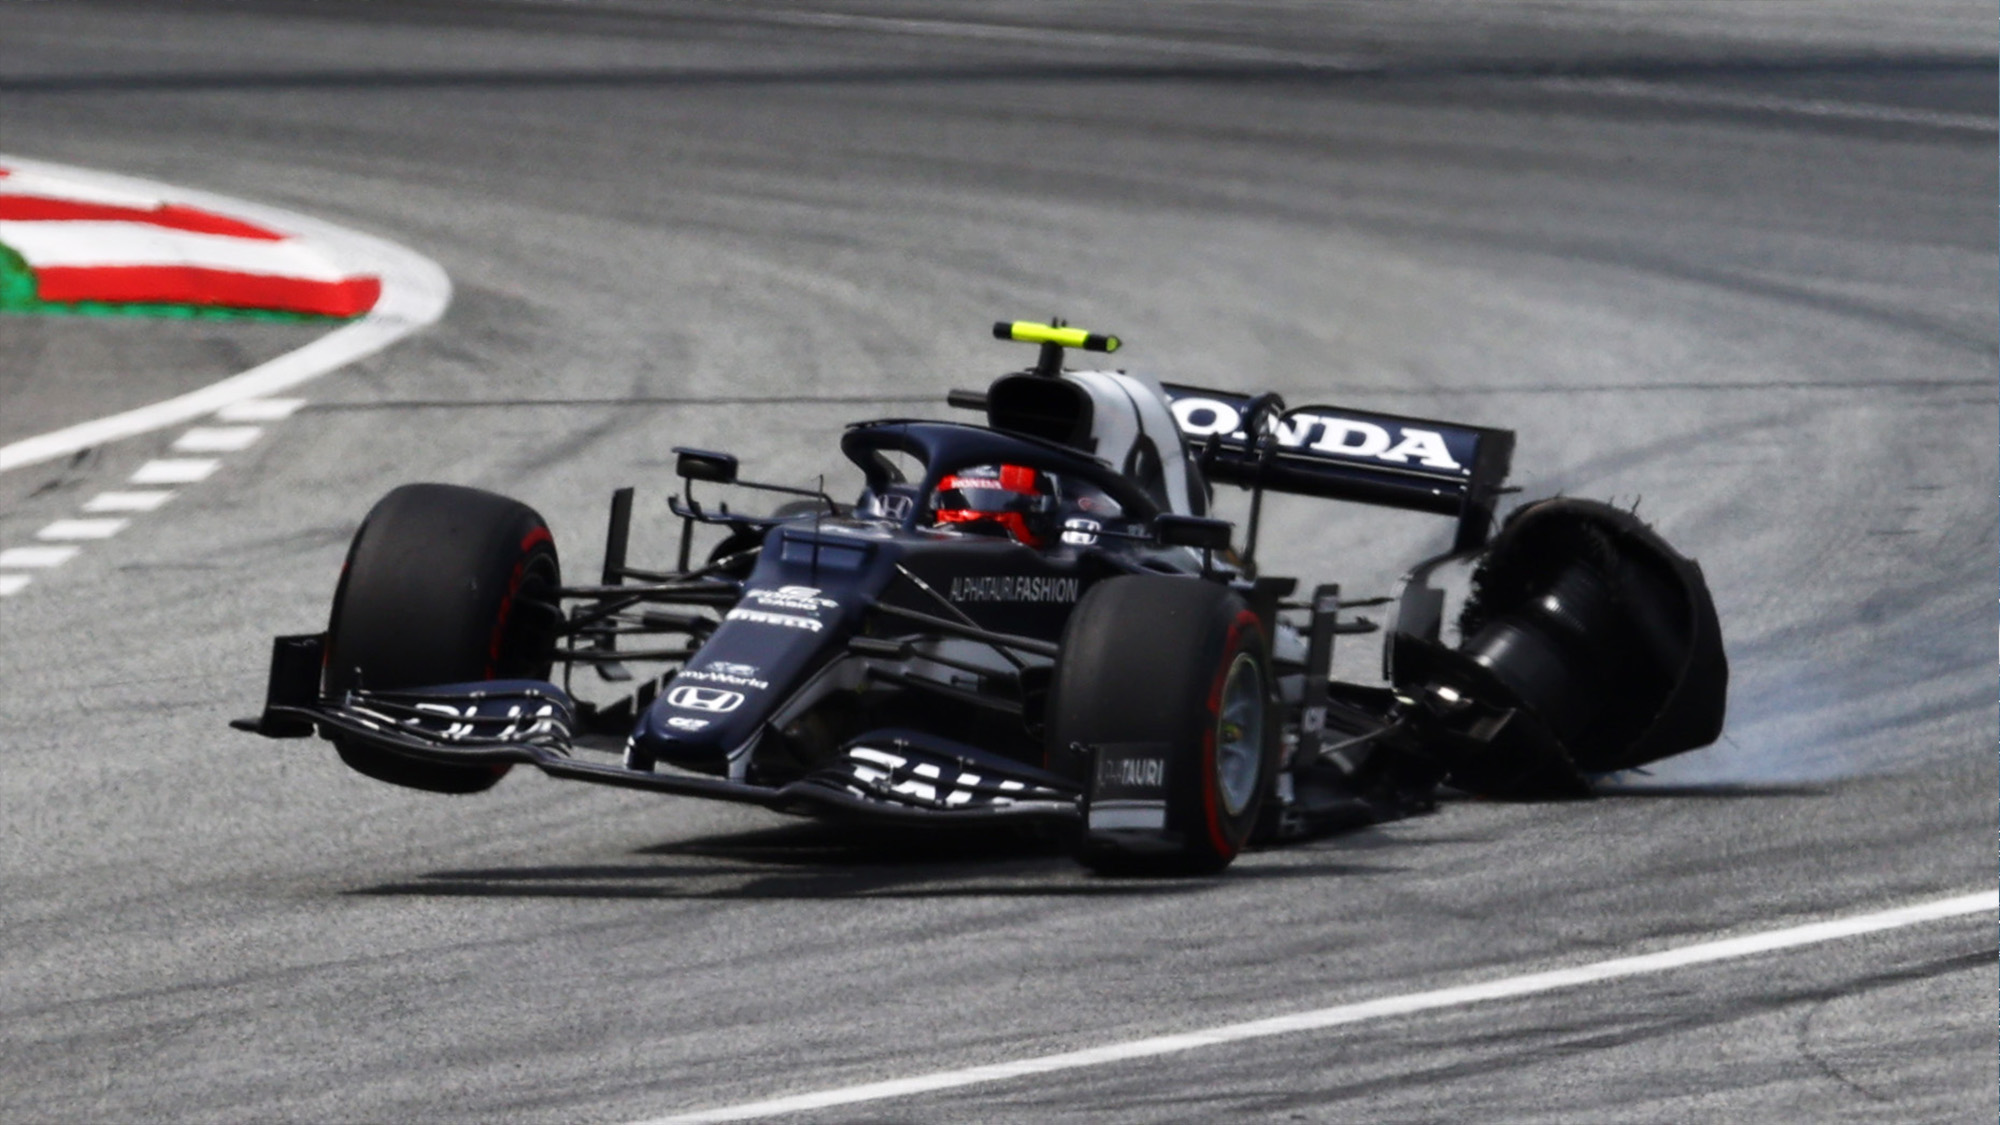 Pierre Gasly with broken rear wheel at the 2021 Styrian Grand Prix